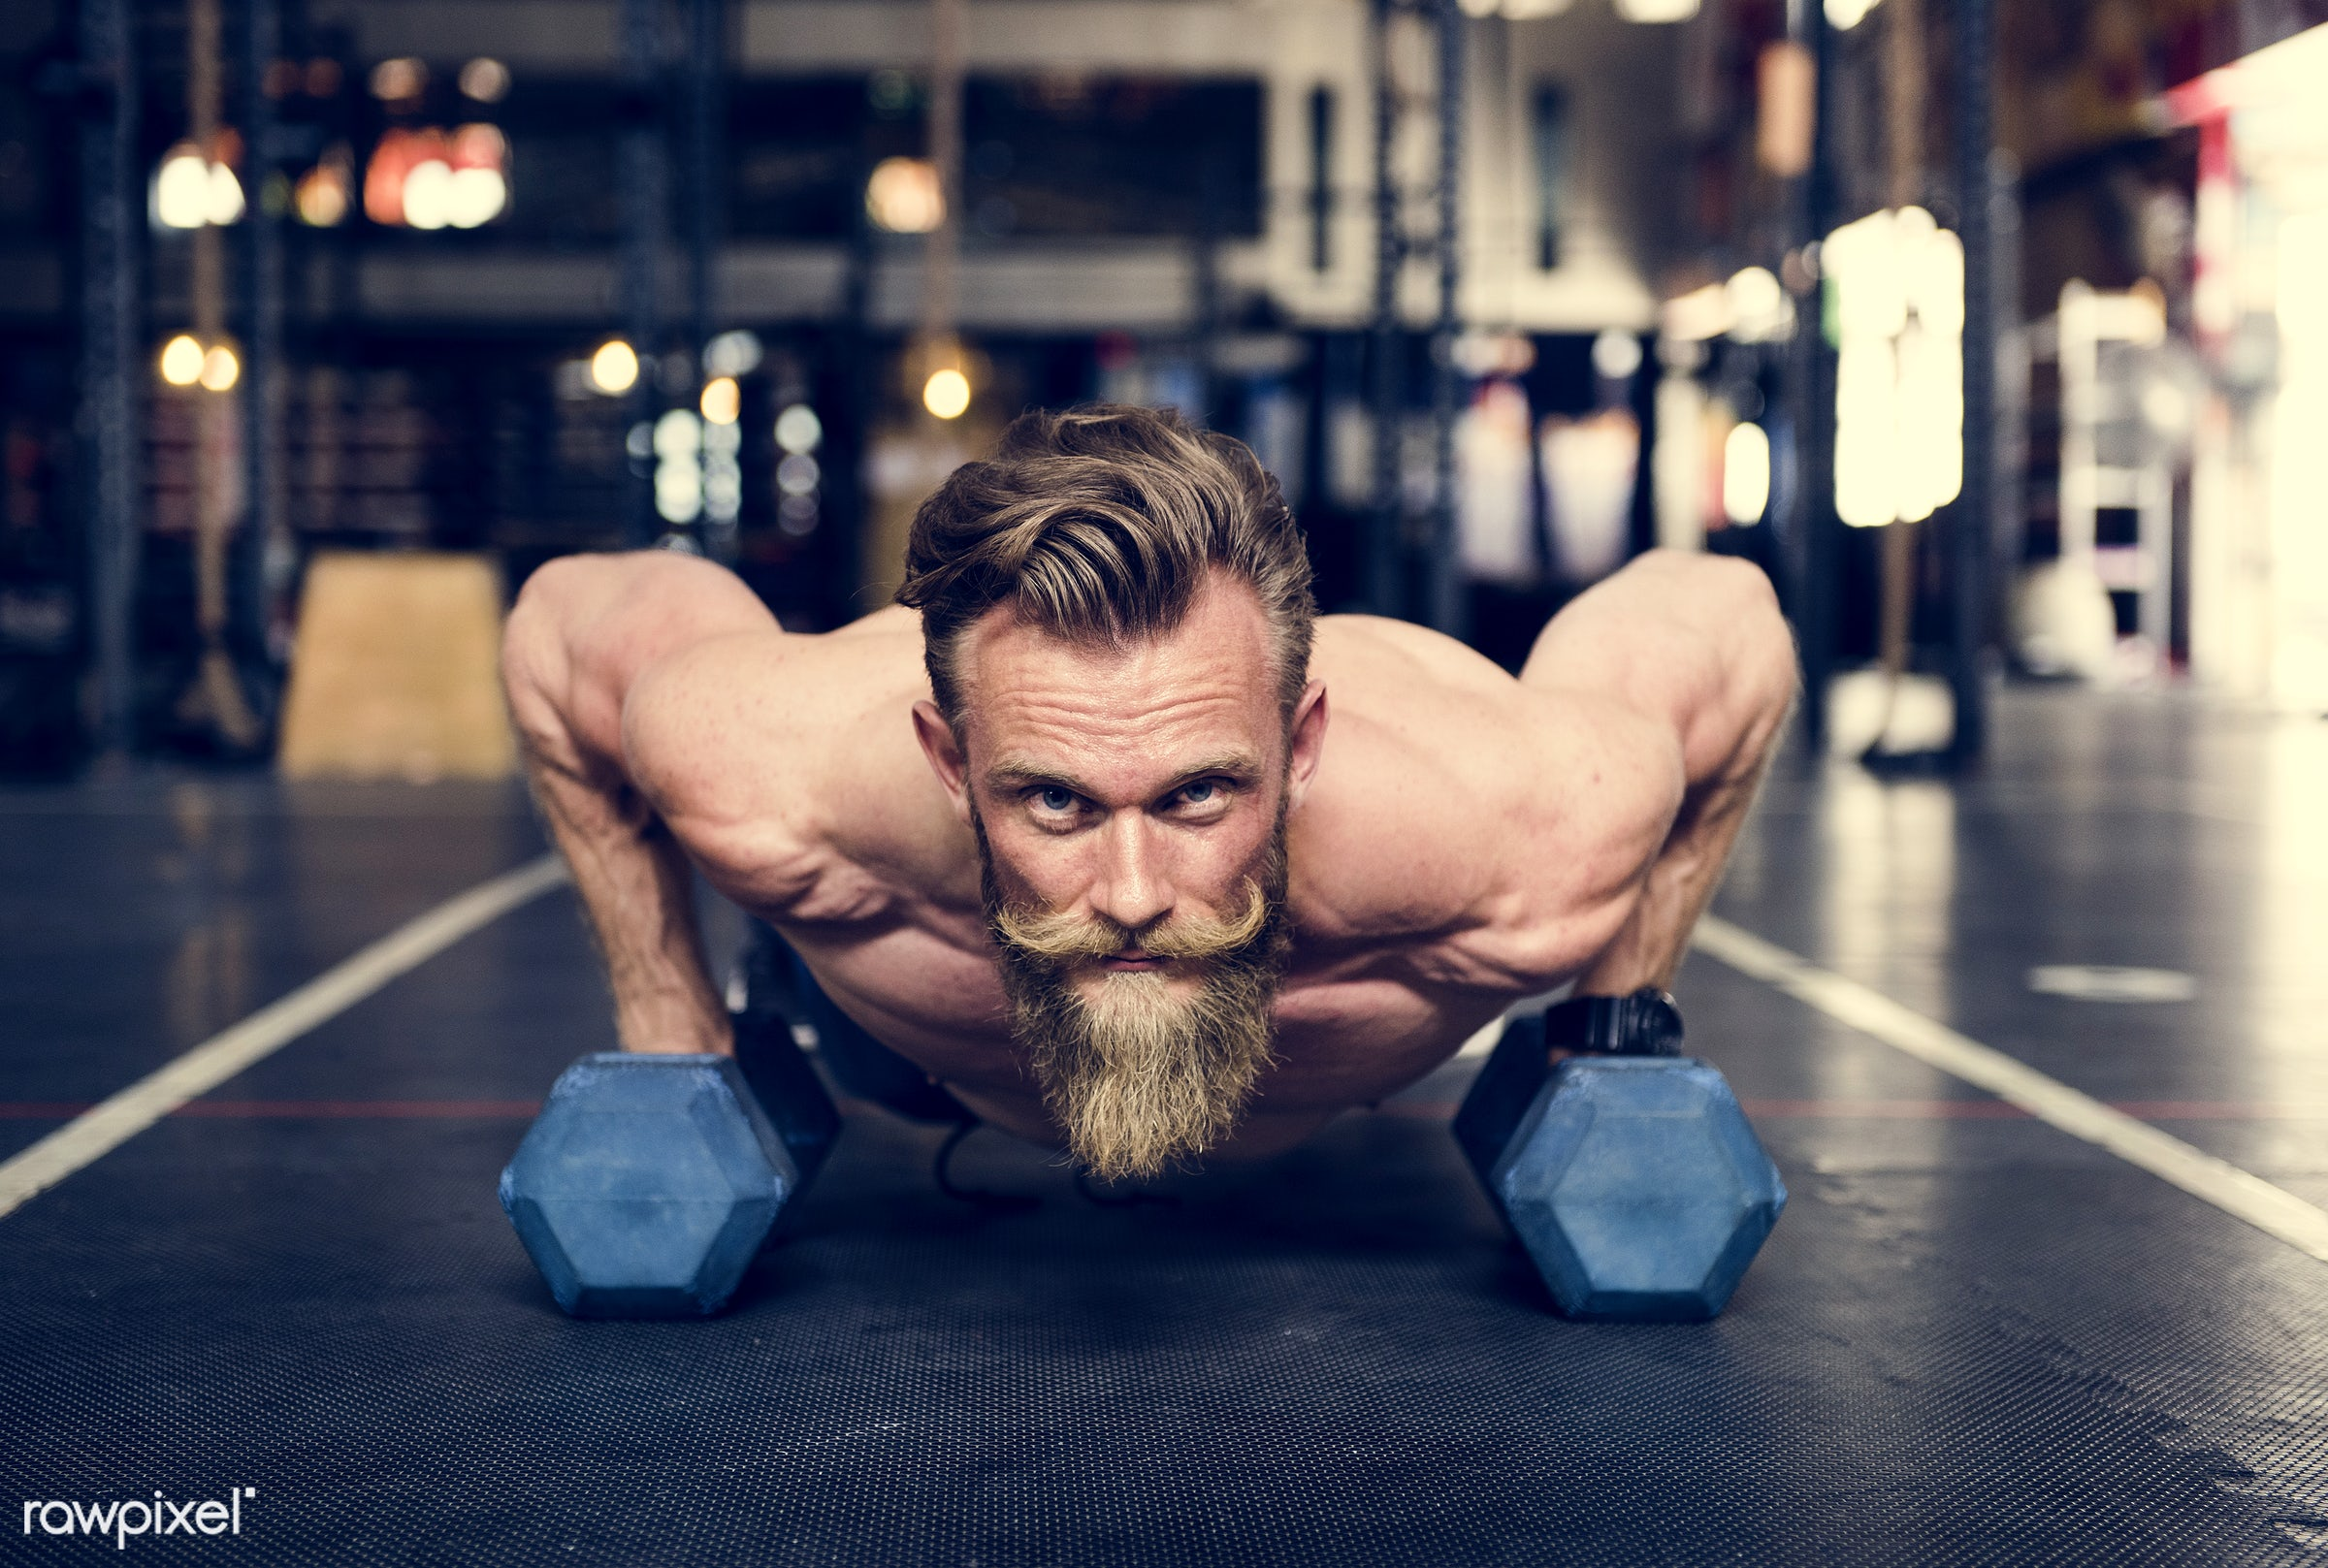 At the gym - active, activity, athlete, athletic, bearded, body, buff, caucasian, dumbbells, equipment, exercise, fit,...